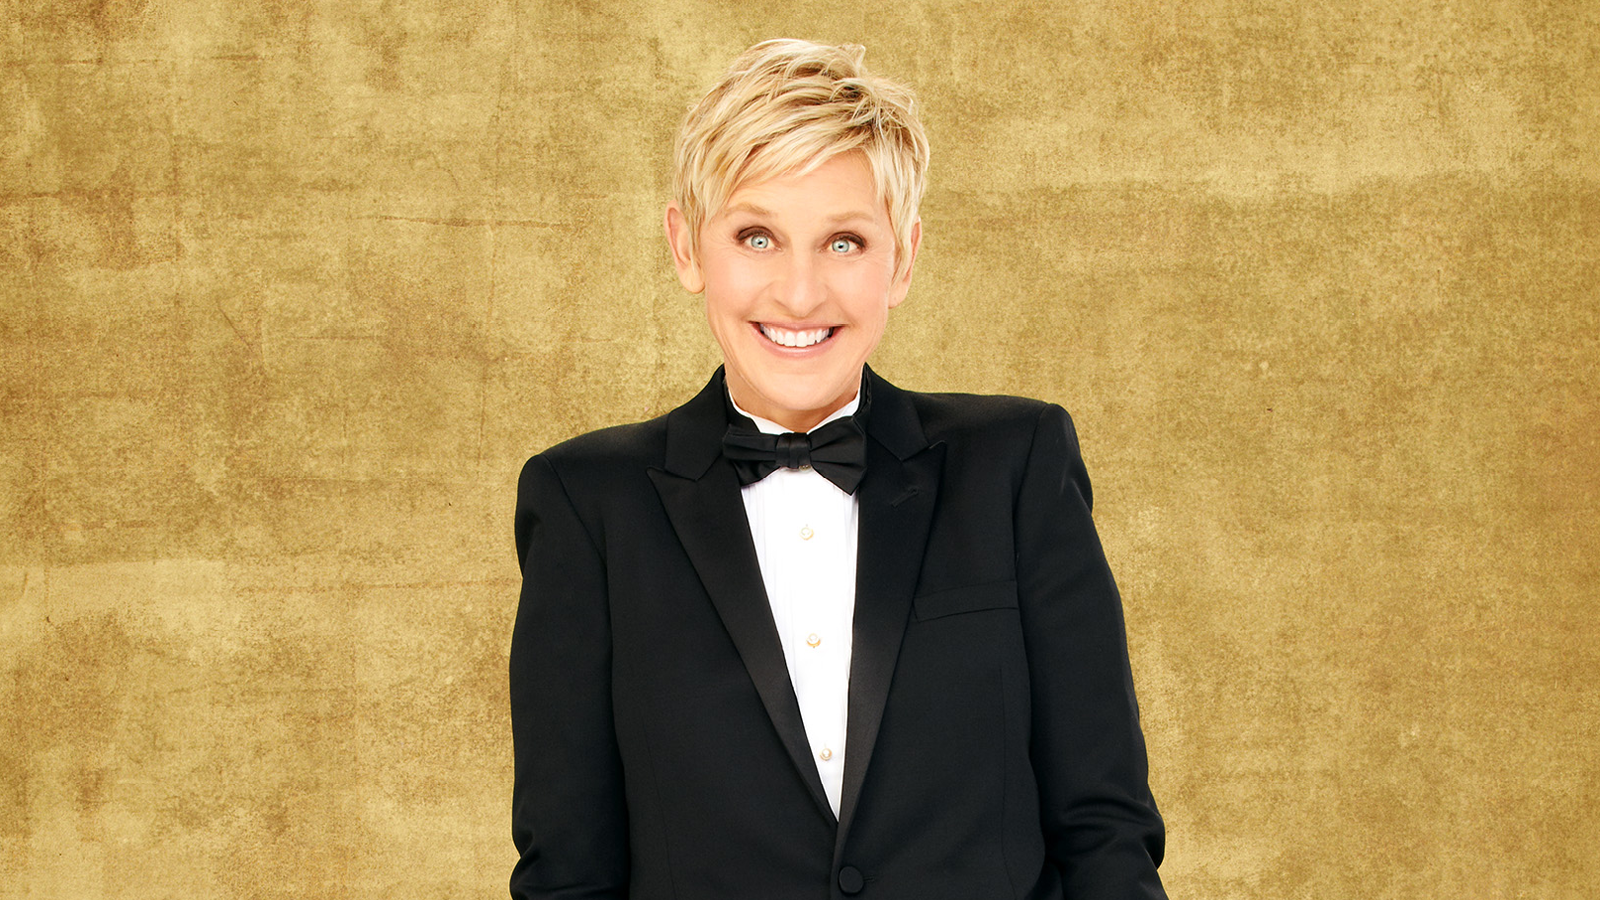 #ThrowbackThursday: Ellen DeGeneres Came Out 20 Years Ago